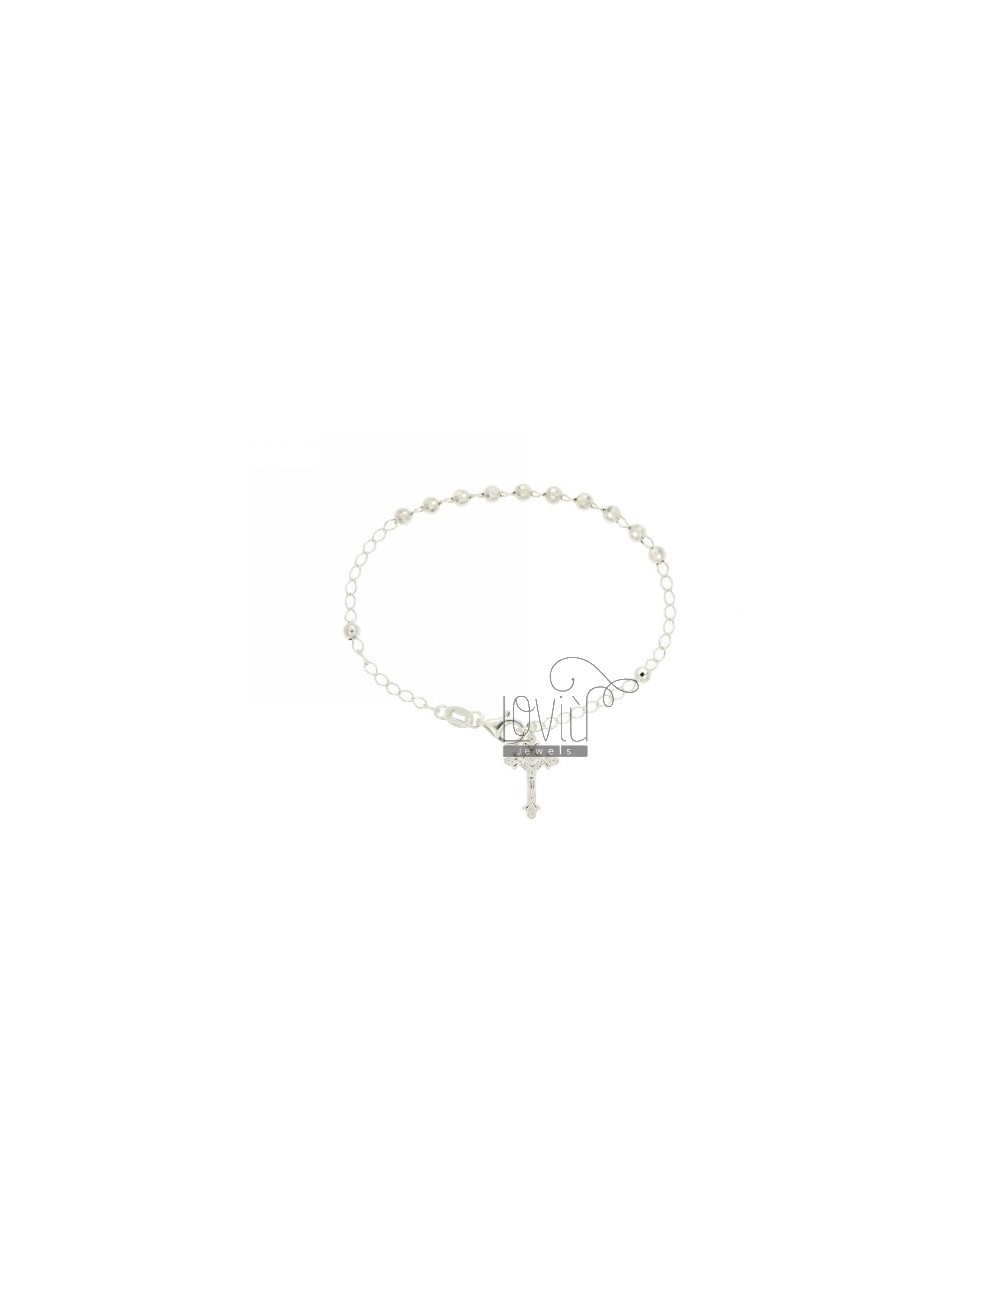 ROSARY BRACELET WITH BALL faceted MM 4 CM 19 CROSS IN SILVER INVESTMENT CAST 20x12 MM TIT 925 ‰